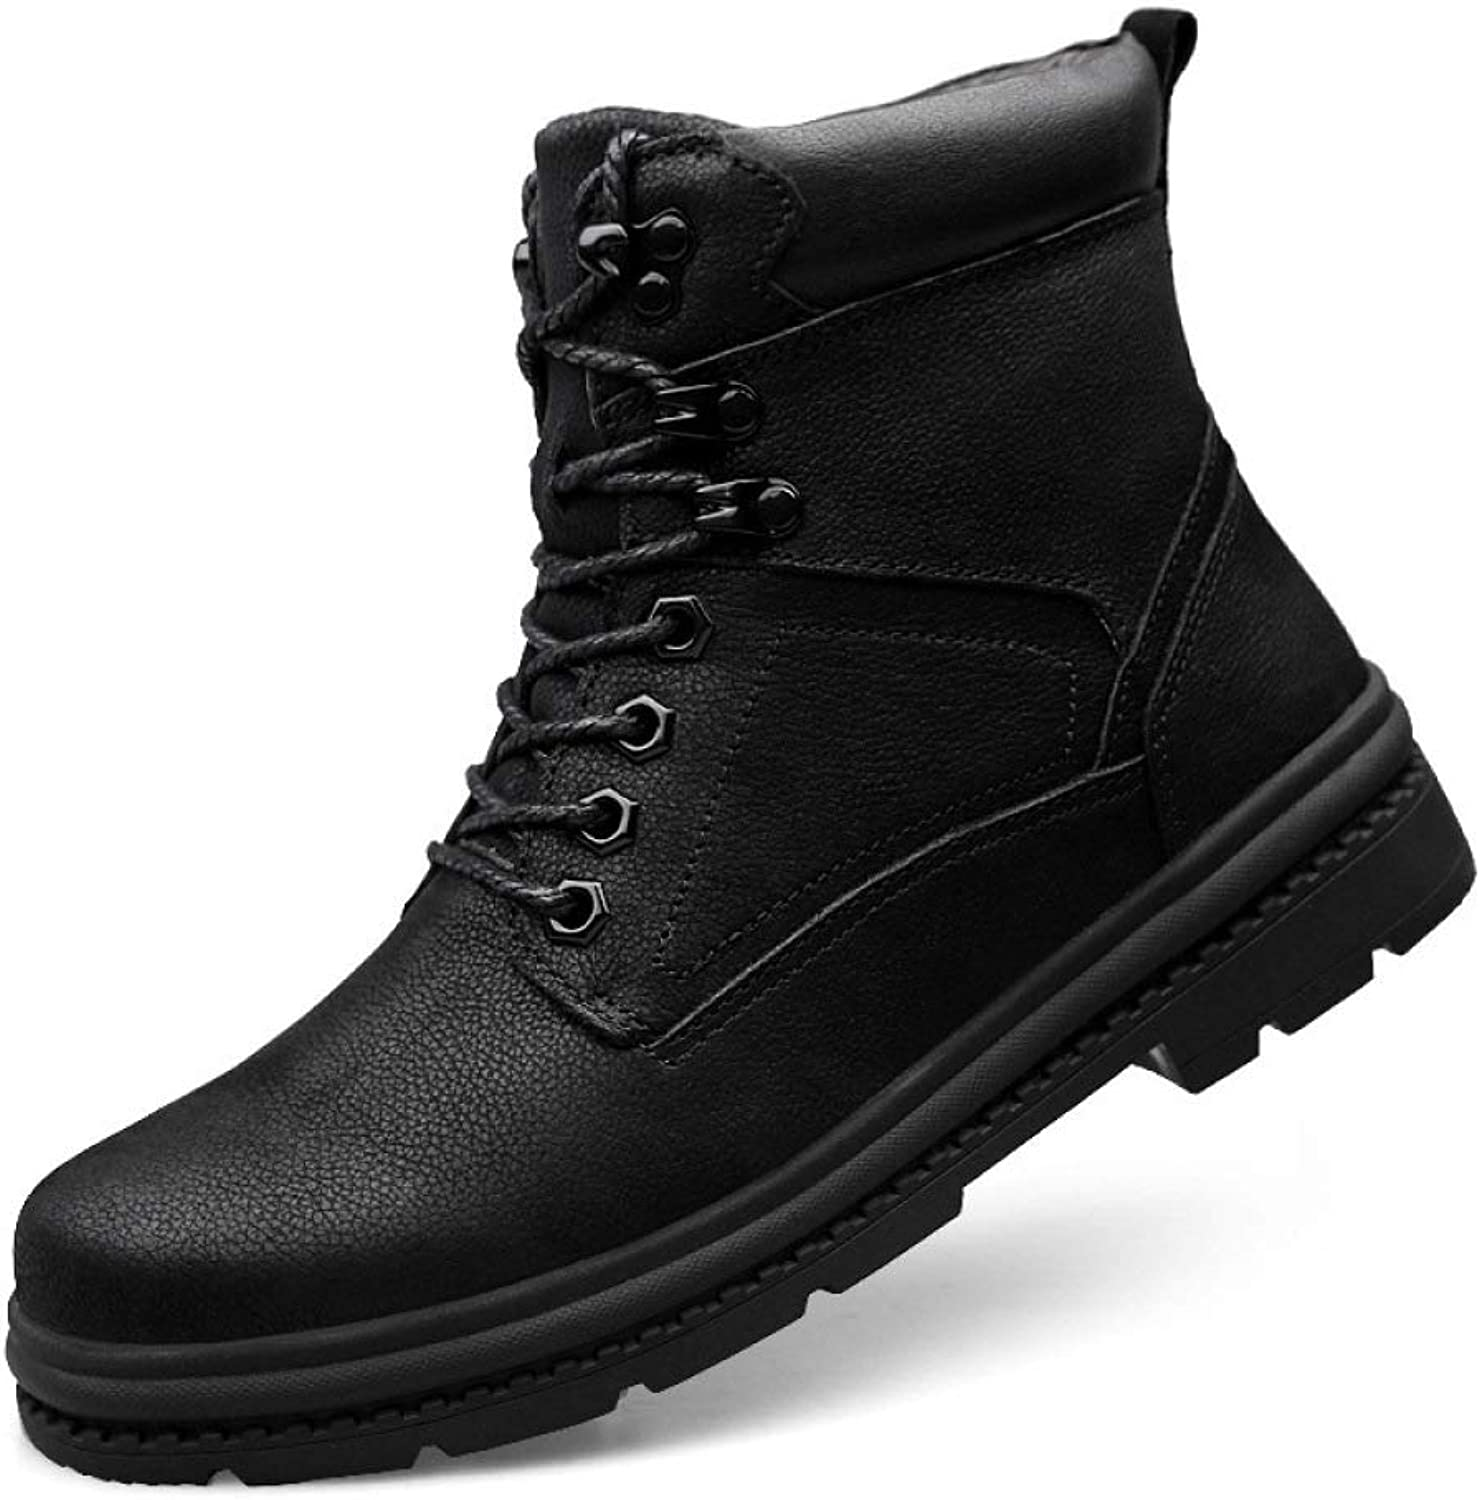 shoes Men's Martin Ankle Boots Footwear Autumn and Winter Plus Velvet Warm Hiking Leather Outdoor Non-Slip High-top shoes,Black-43